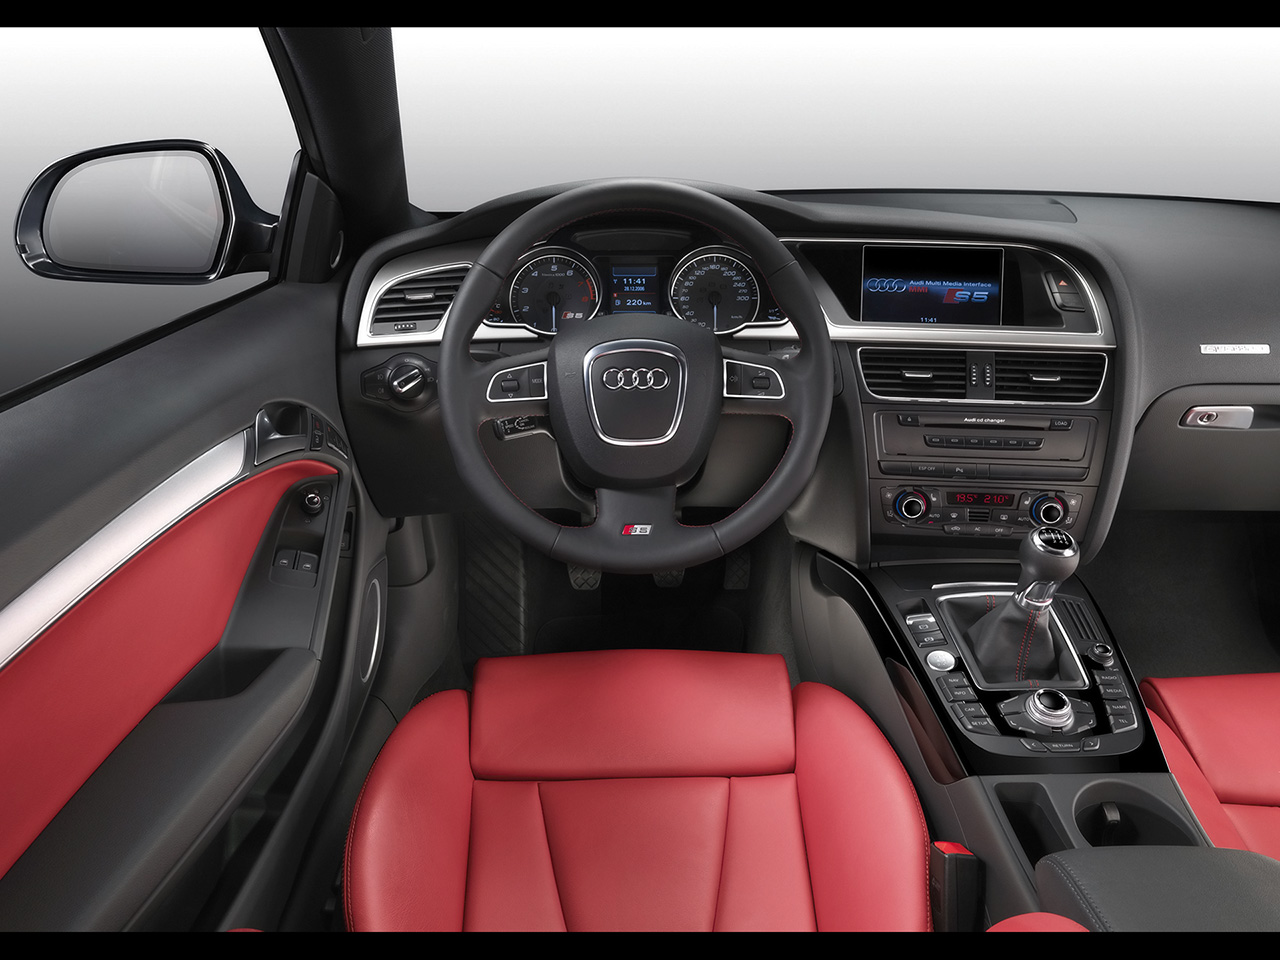 Audi S5 Coupe image #16